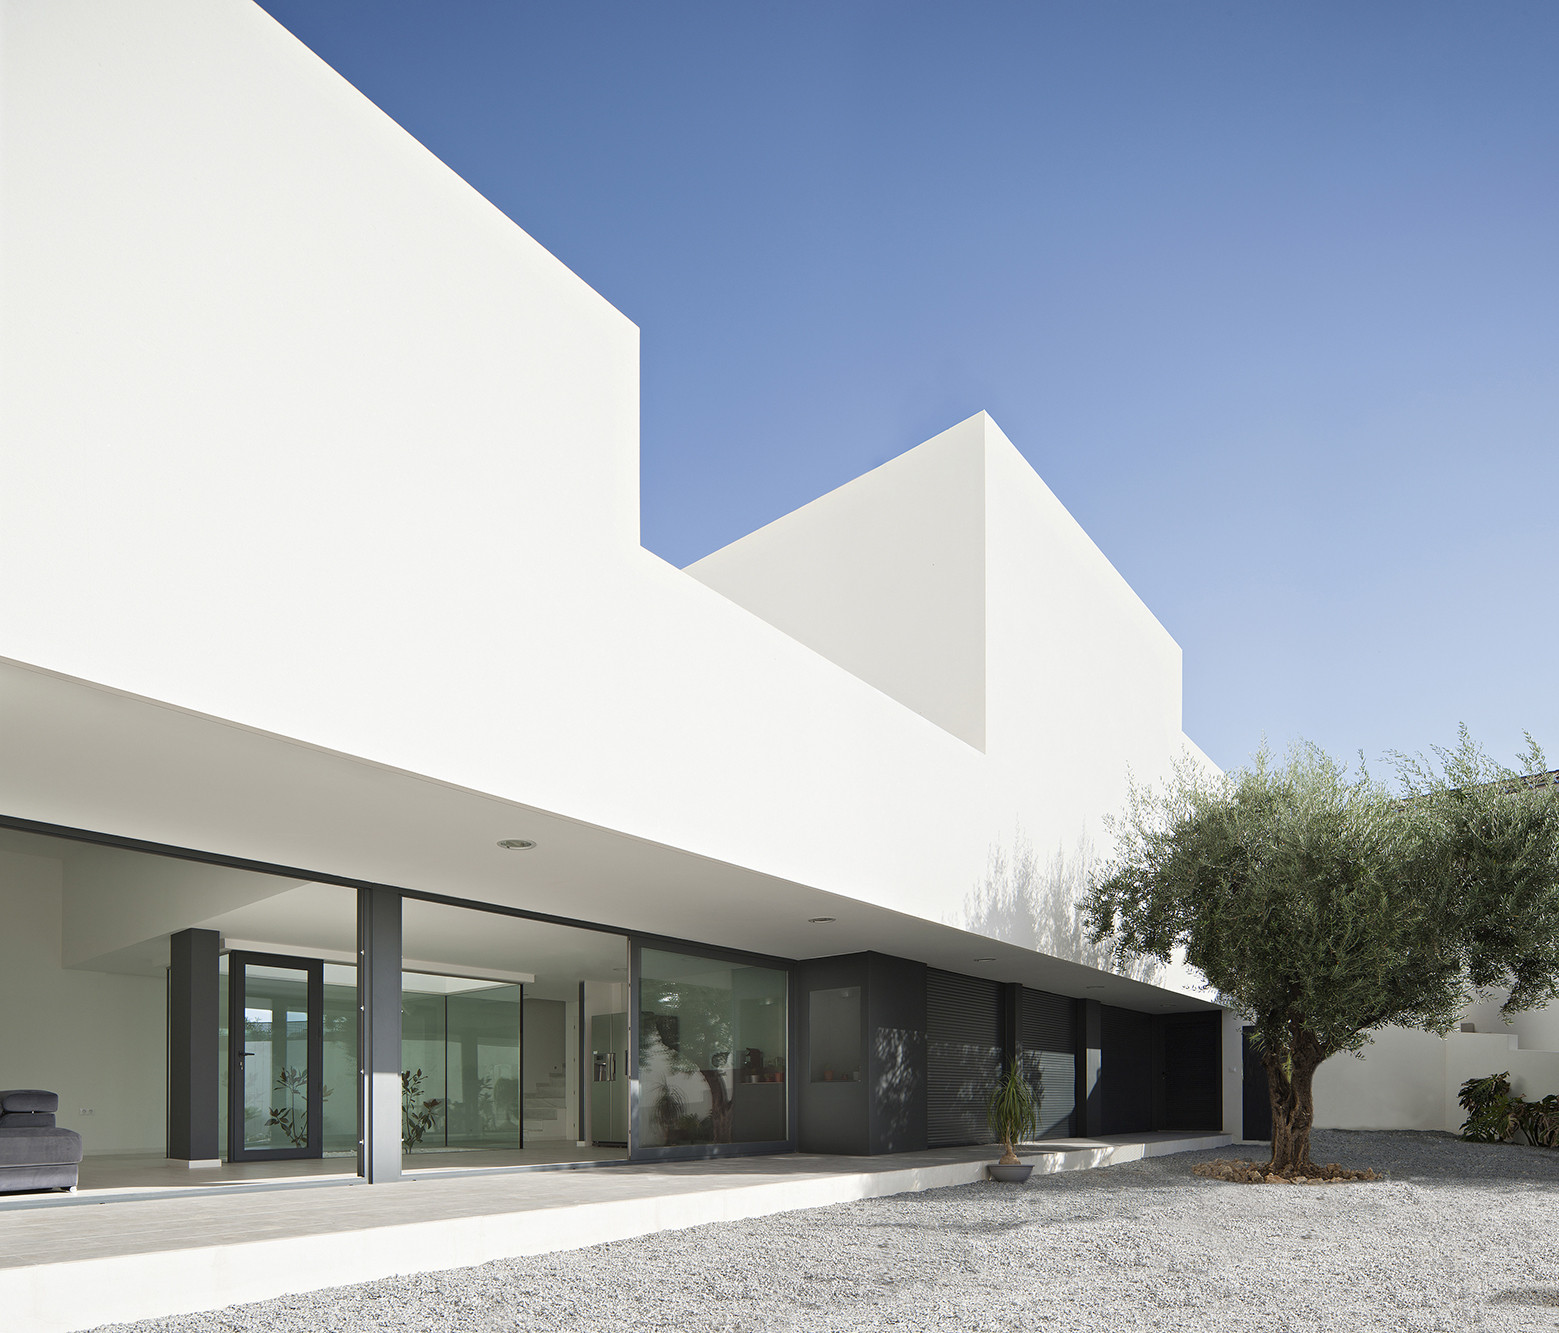 Single Family House with Garden / DTR_Studio Arquitectos, © Javier Callejas